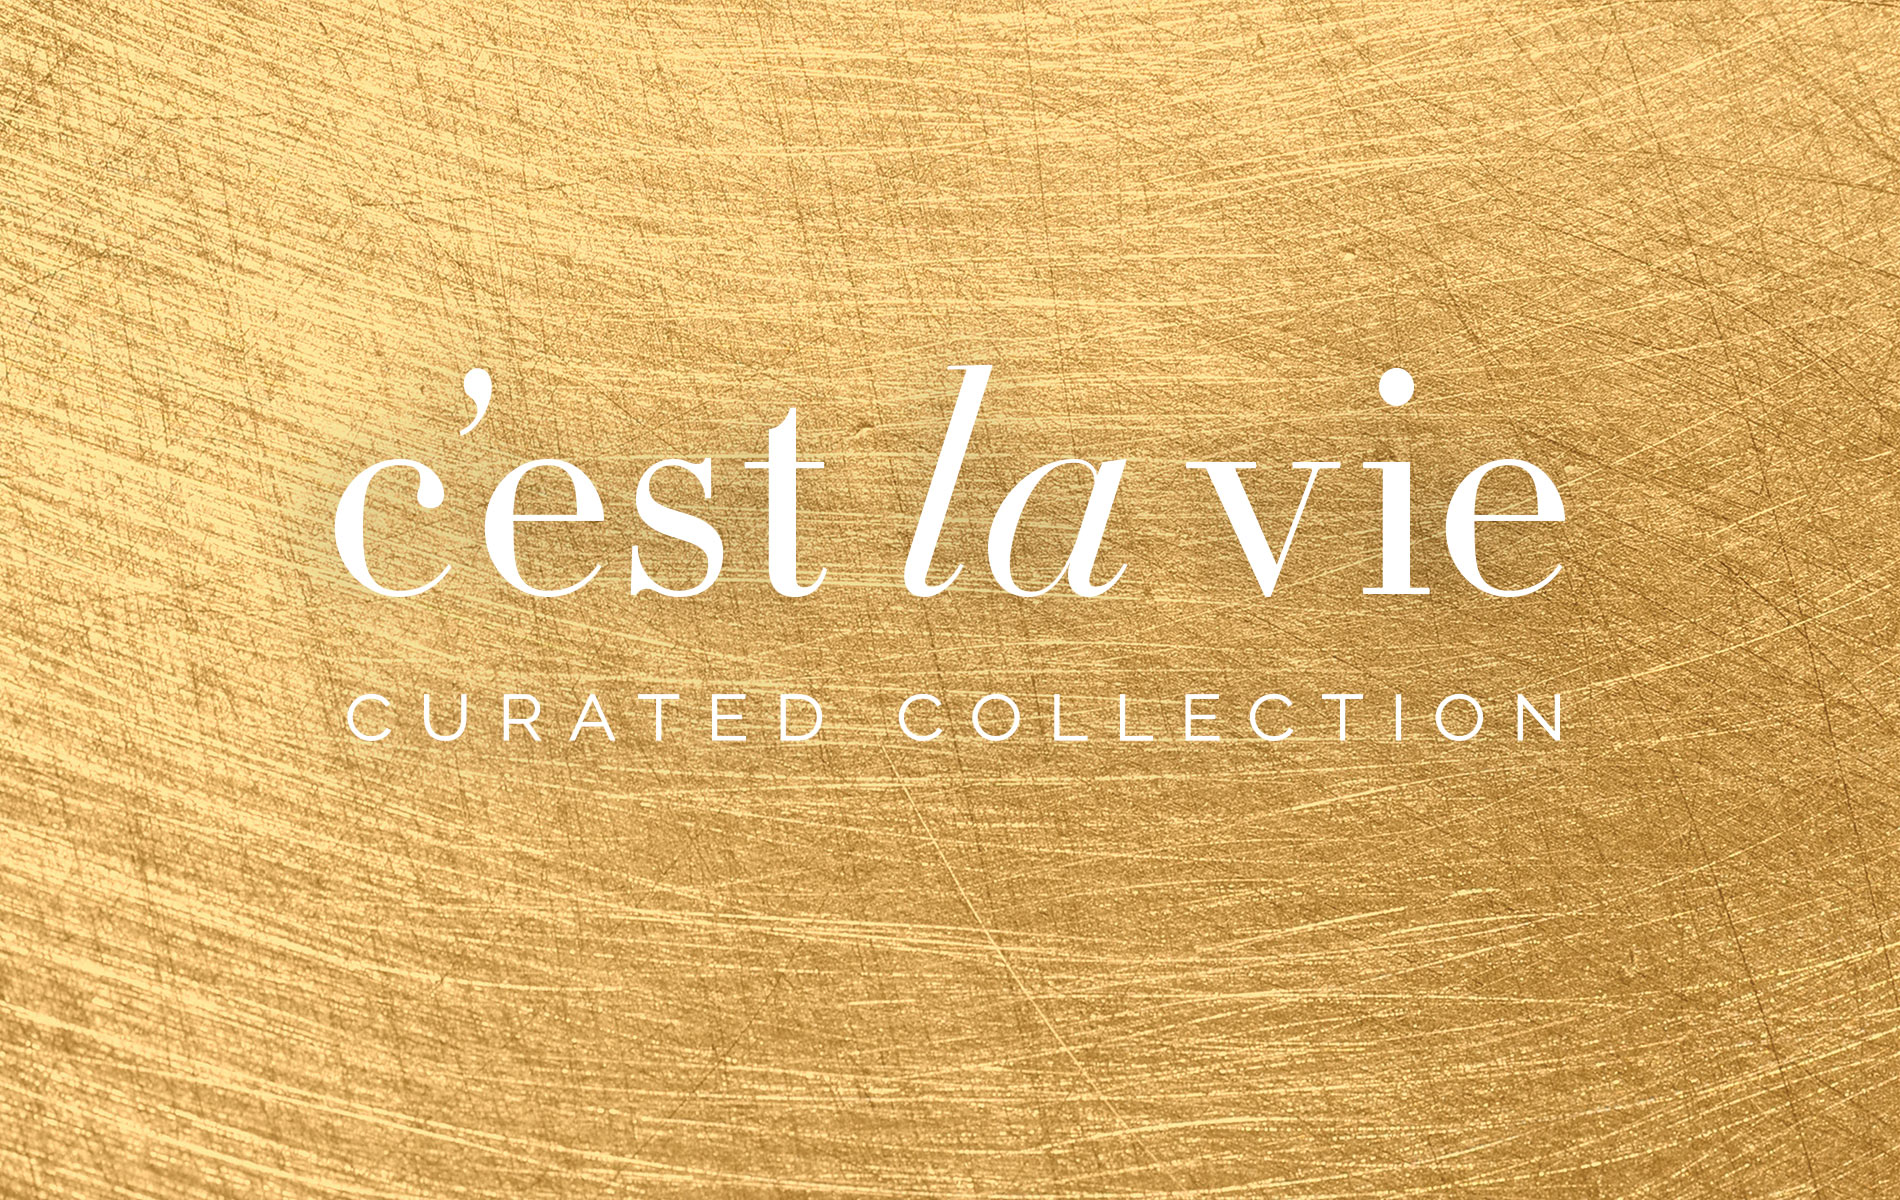 C'est la VIE curated collections